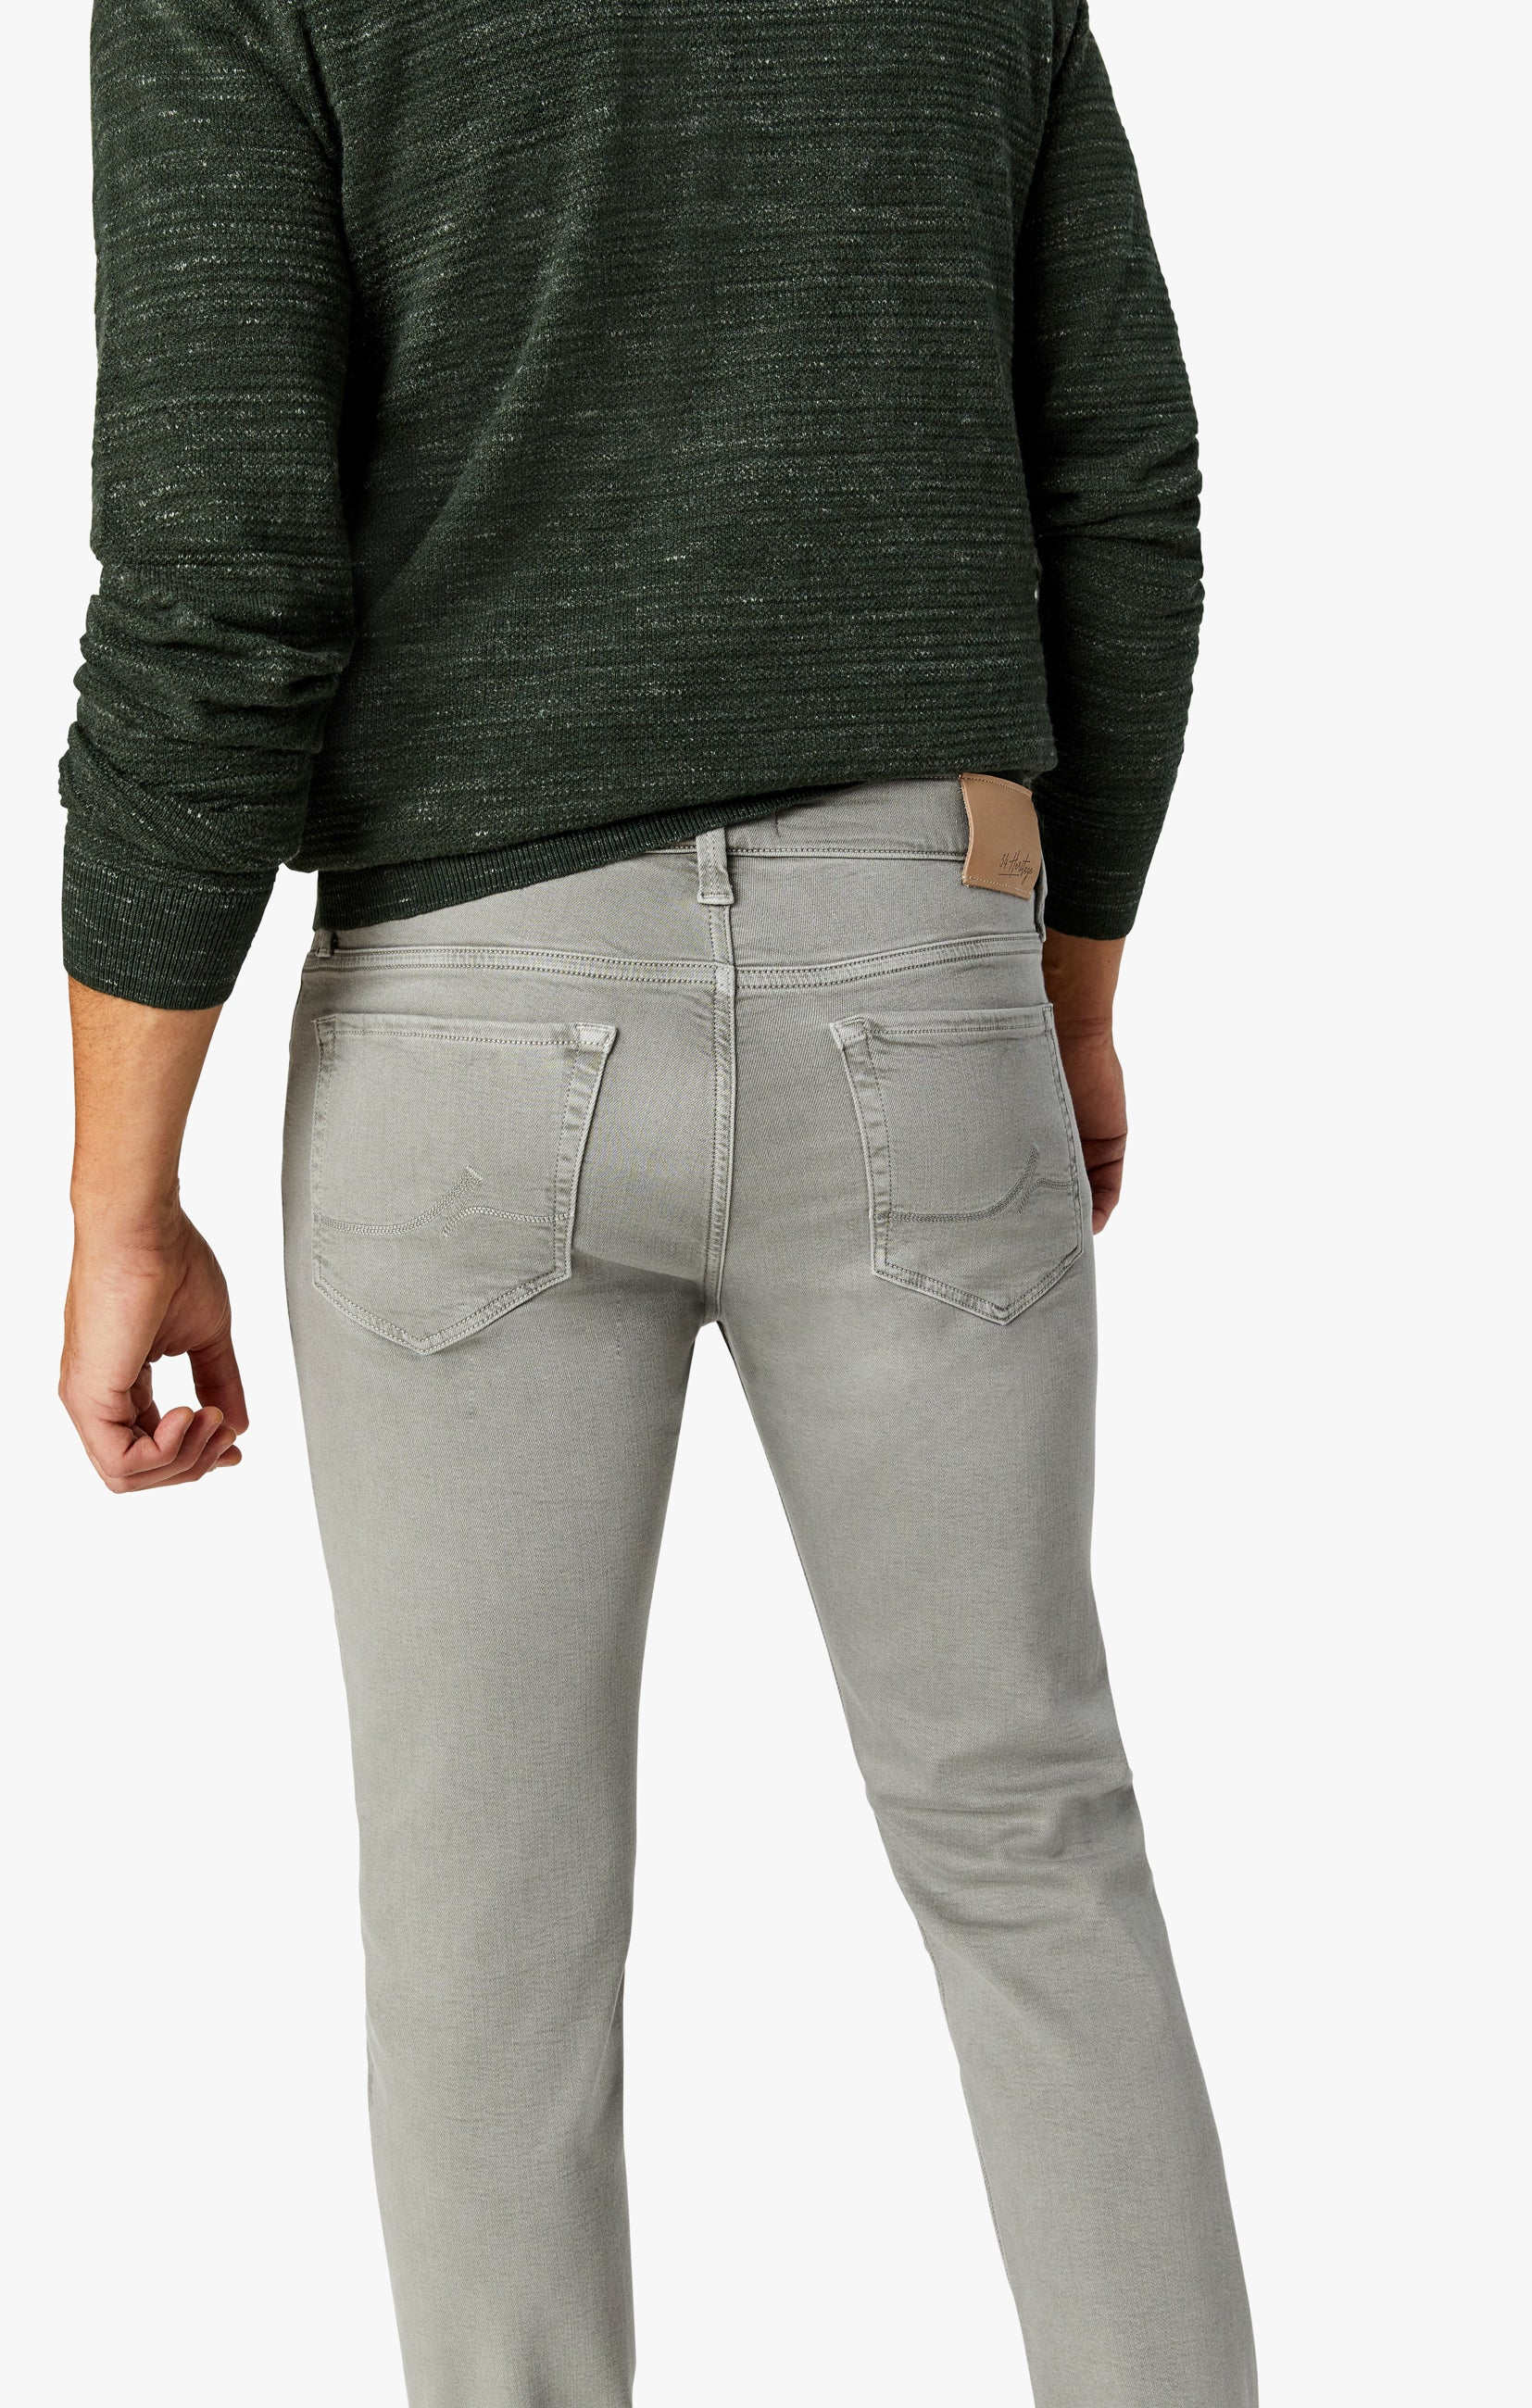 Charisma Classic Fit Jeans in Light Grey Comfort Image 9